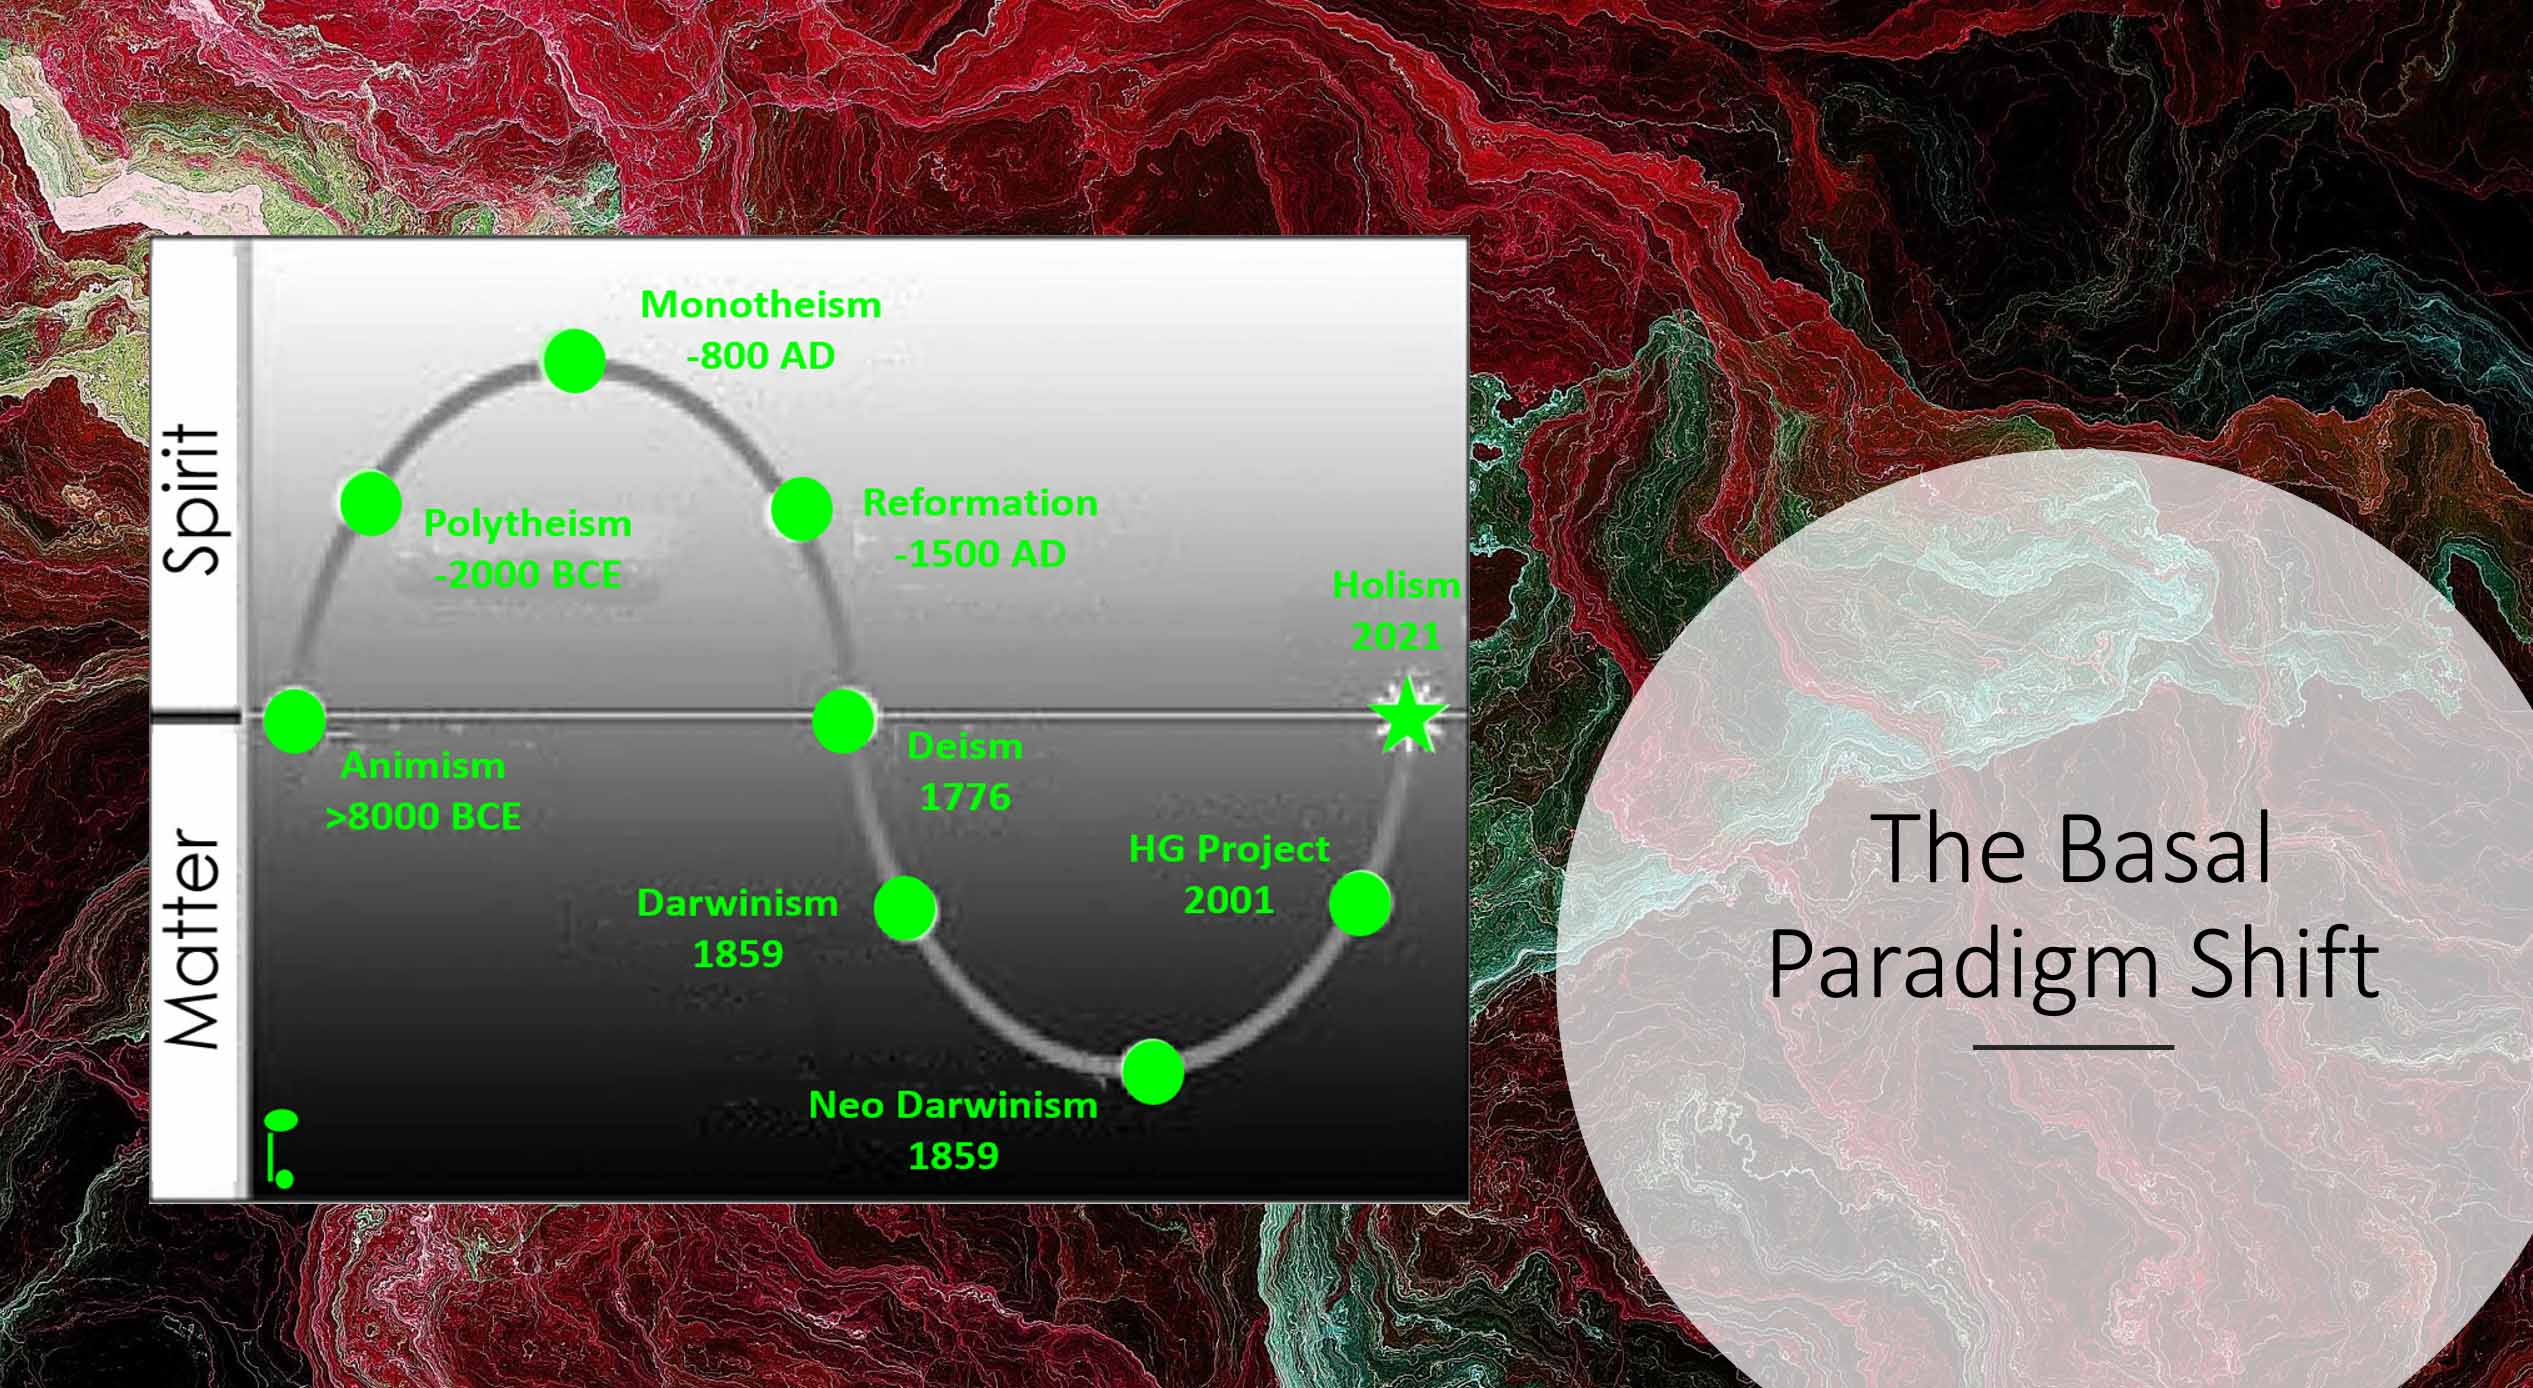 Its time the Basal Paradigm Shift